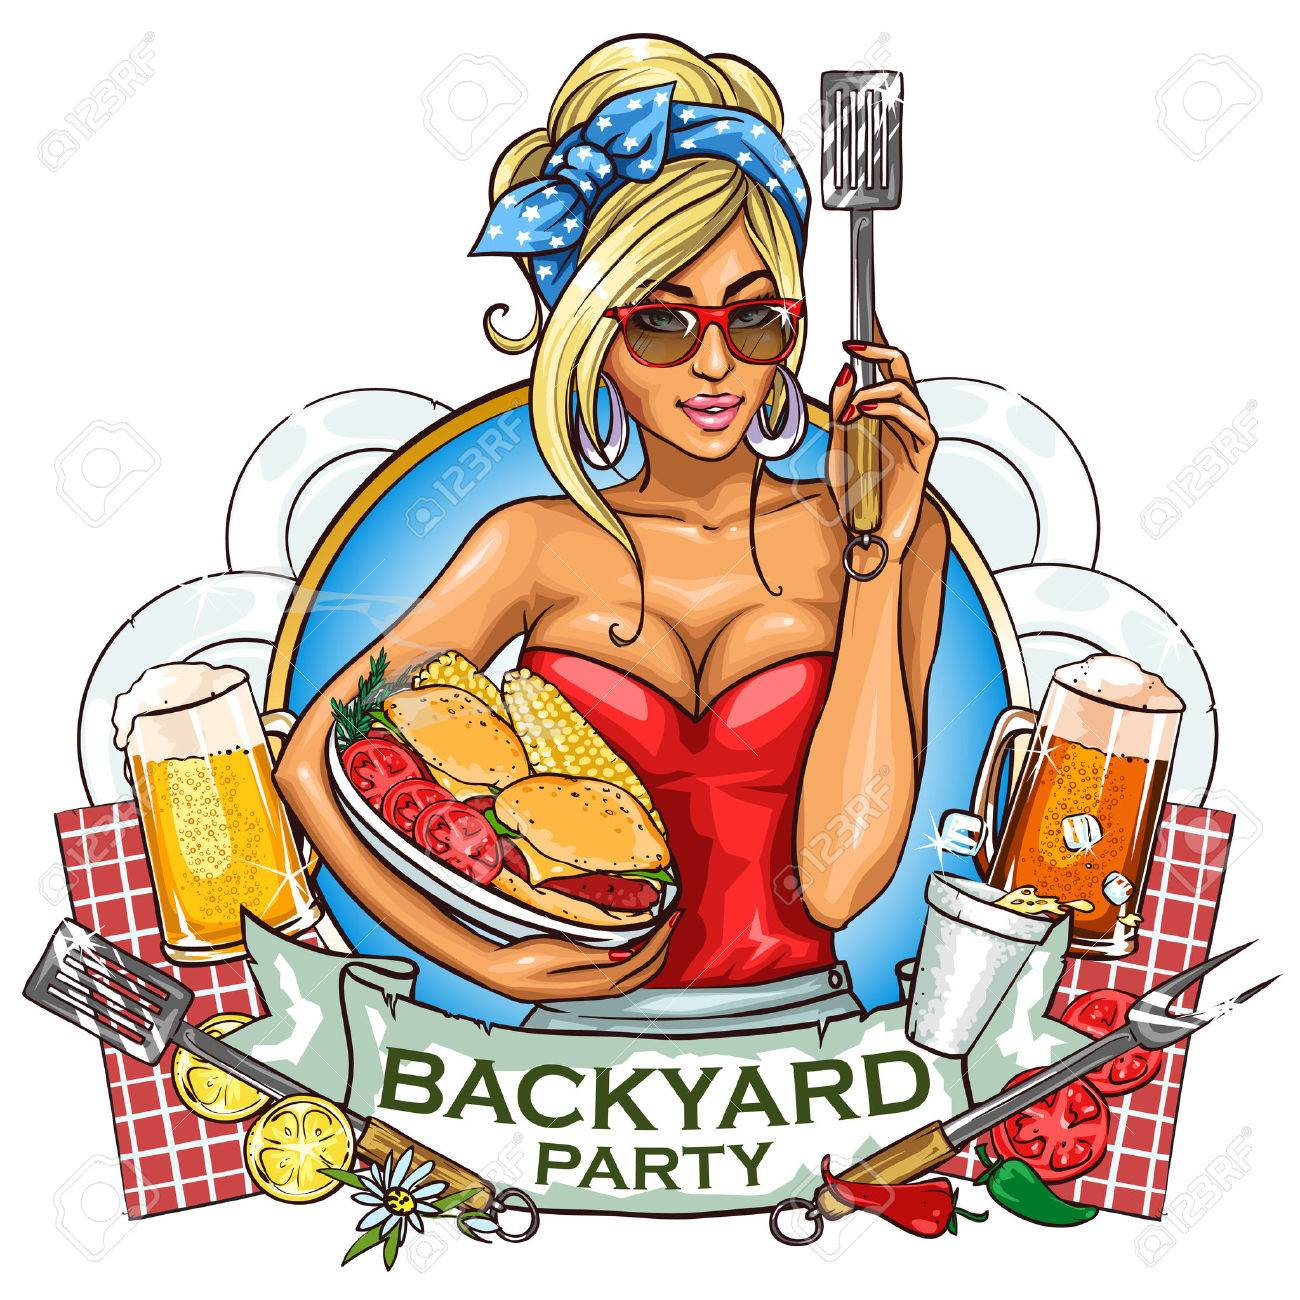 BBQ Grill Party Label Design With Ribbon Banner And Sample Text - Backyard bbq party cartoon